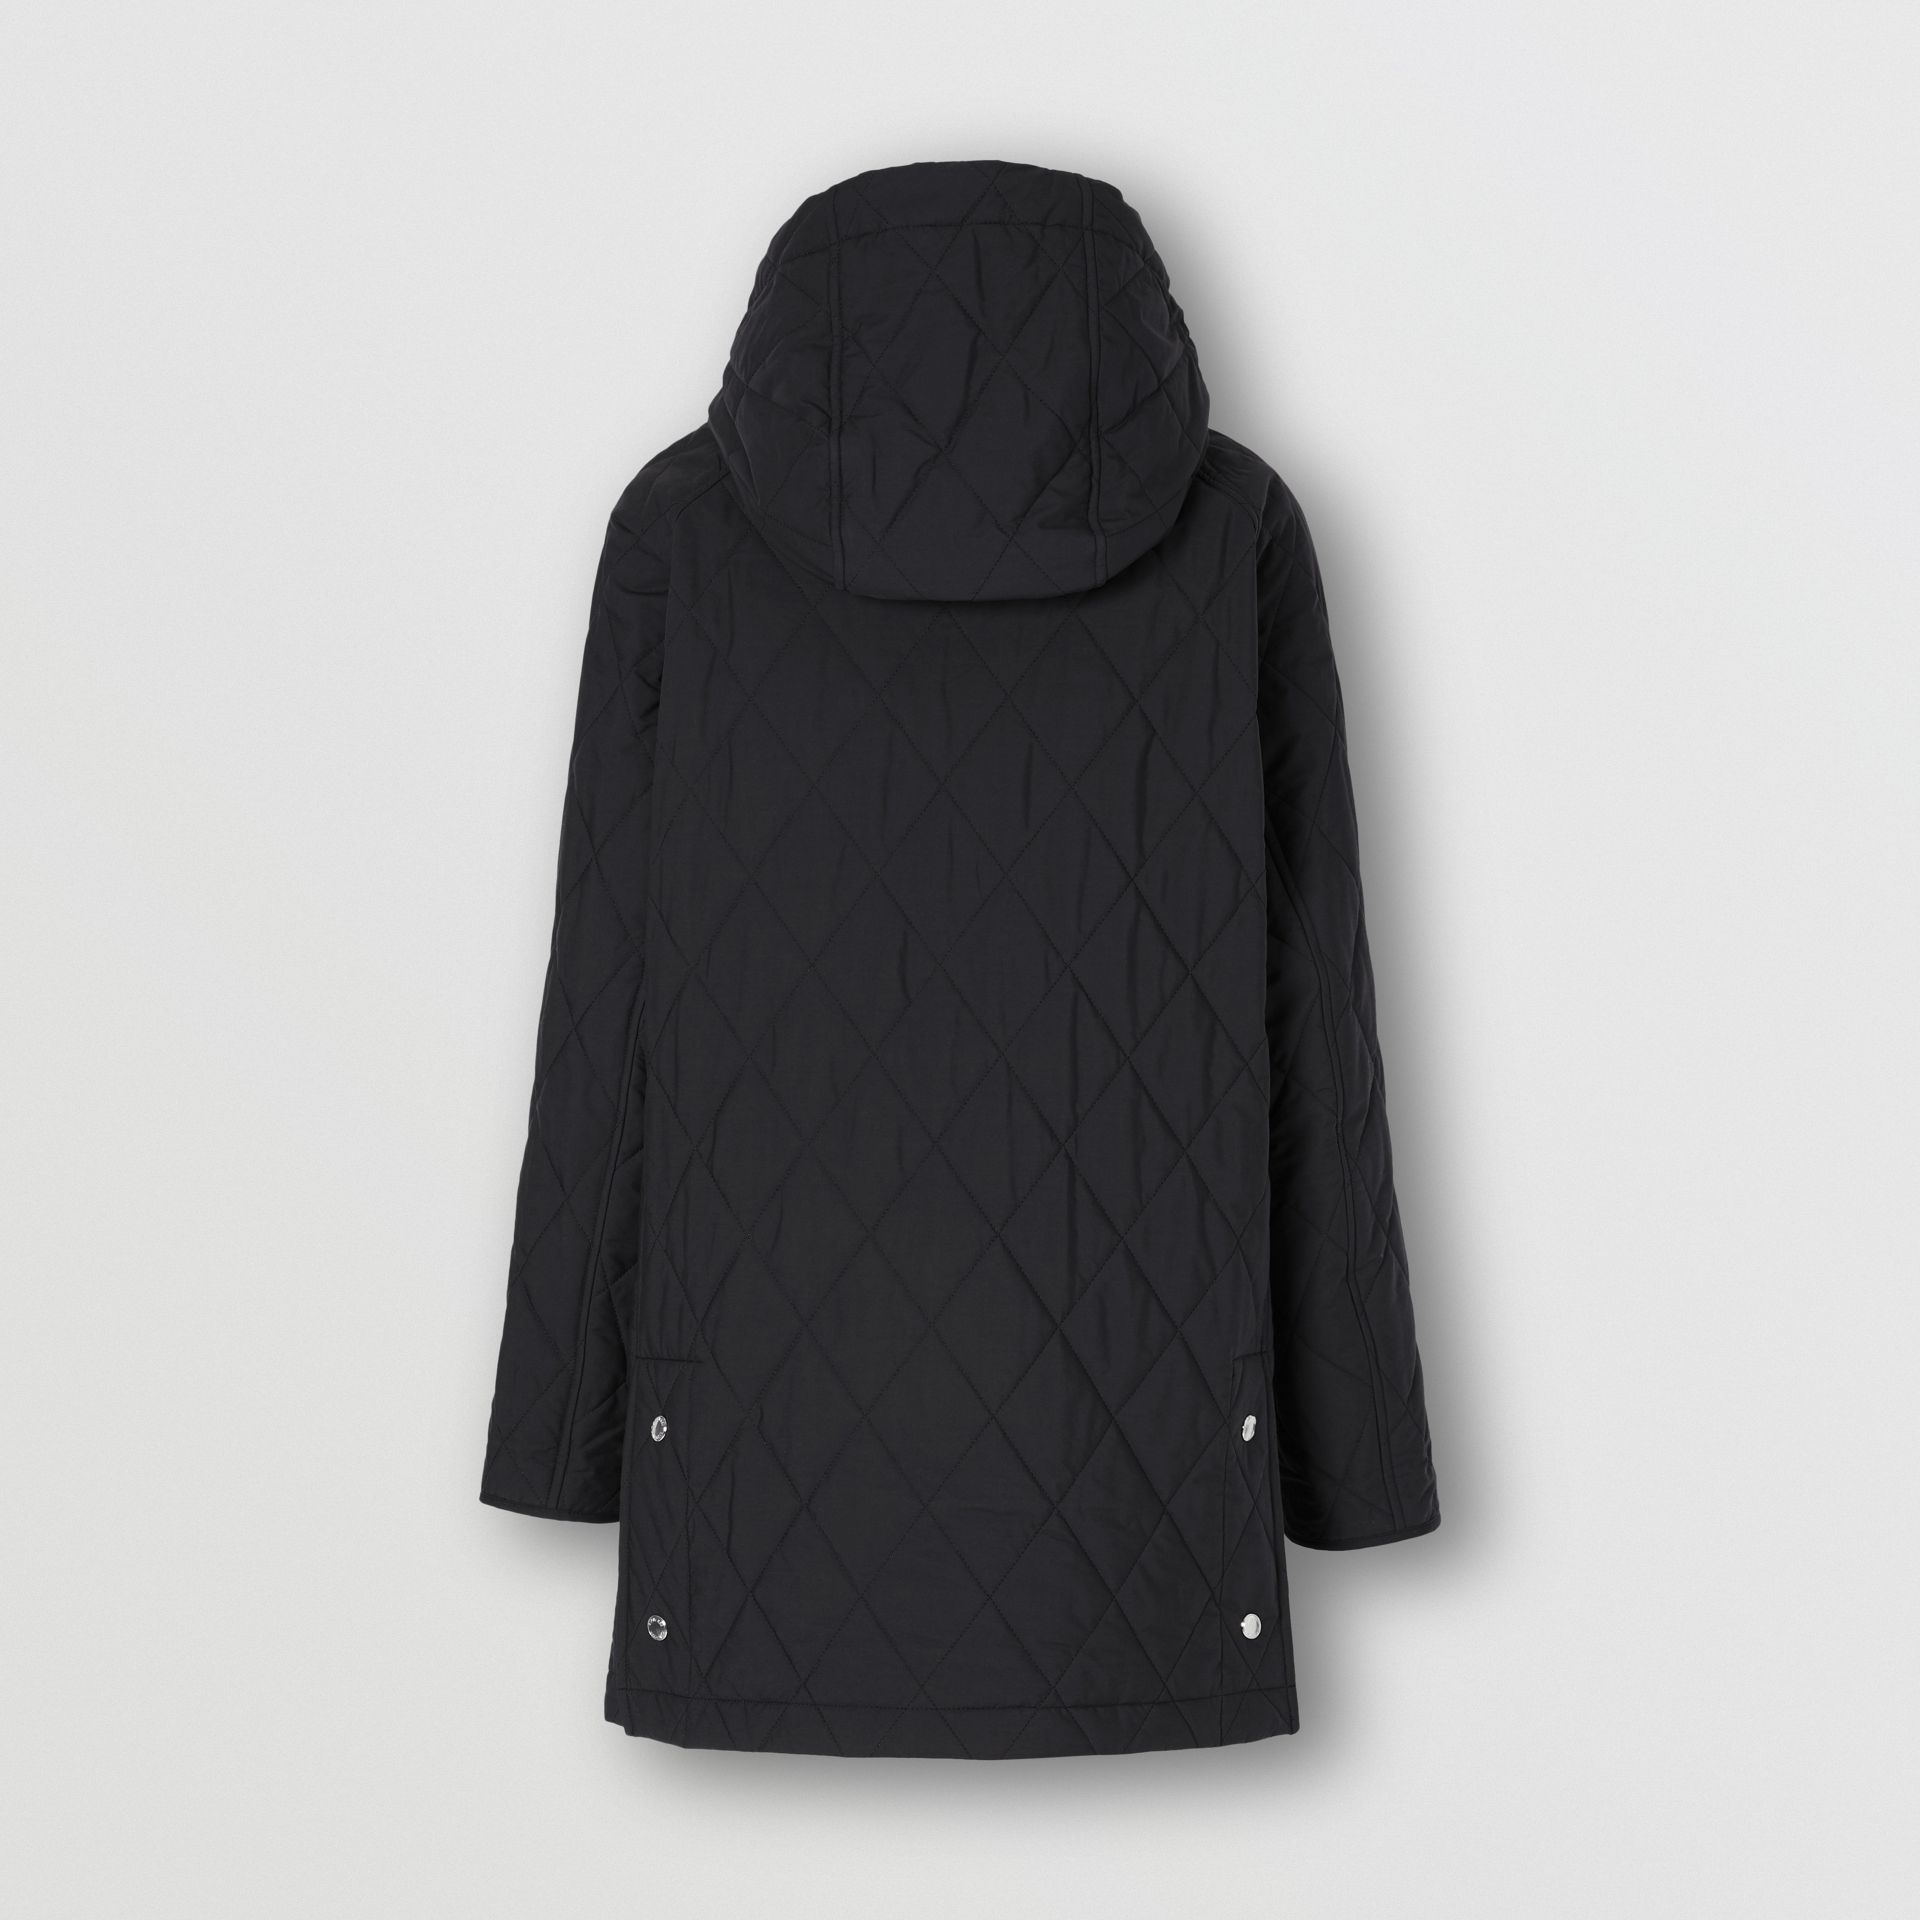 Diamond Quilted Cotton Hooded Coat in Black - Women | Burberry - gallery image 6